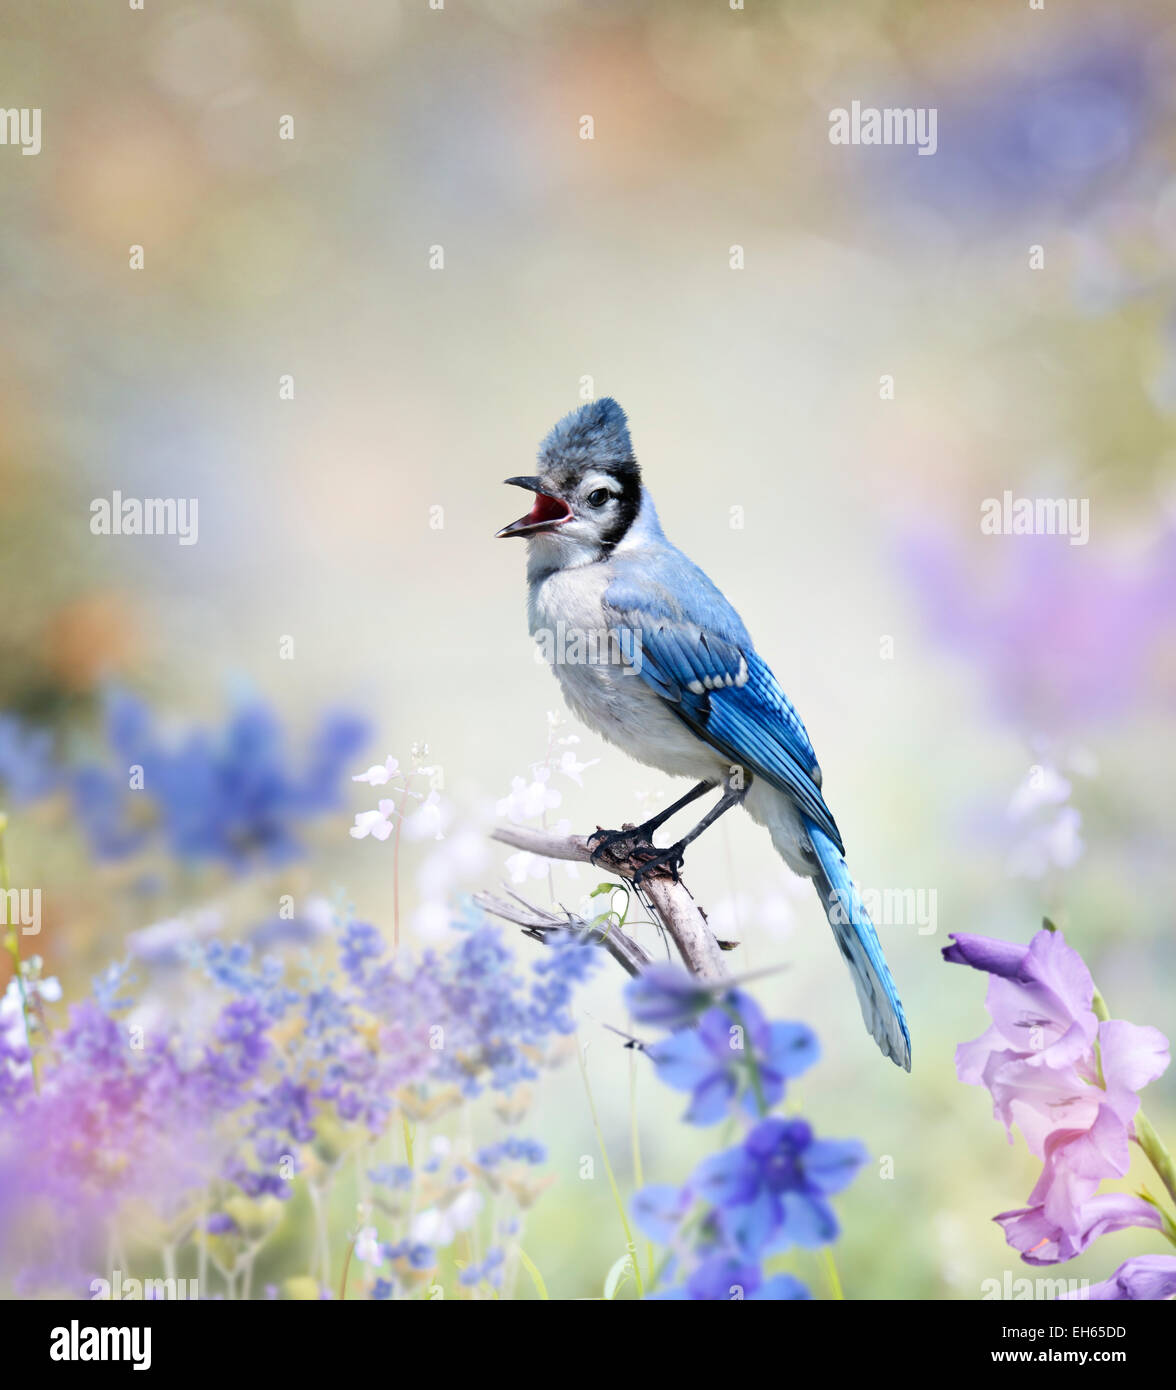 Blue Jay Perched In The Garden Stock Photo